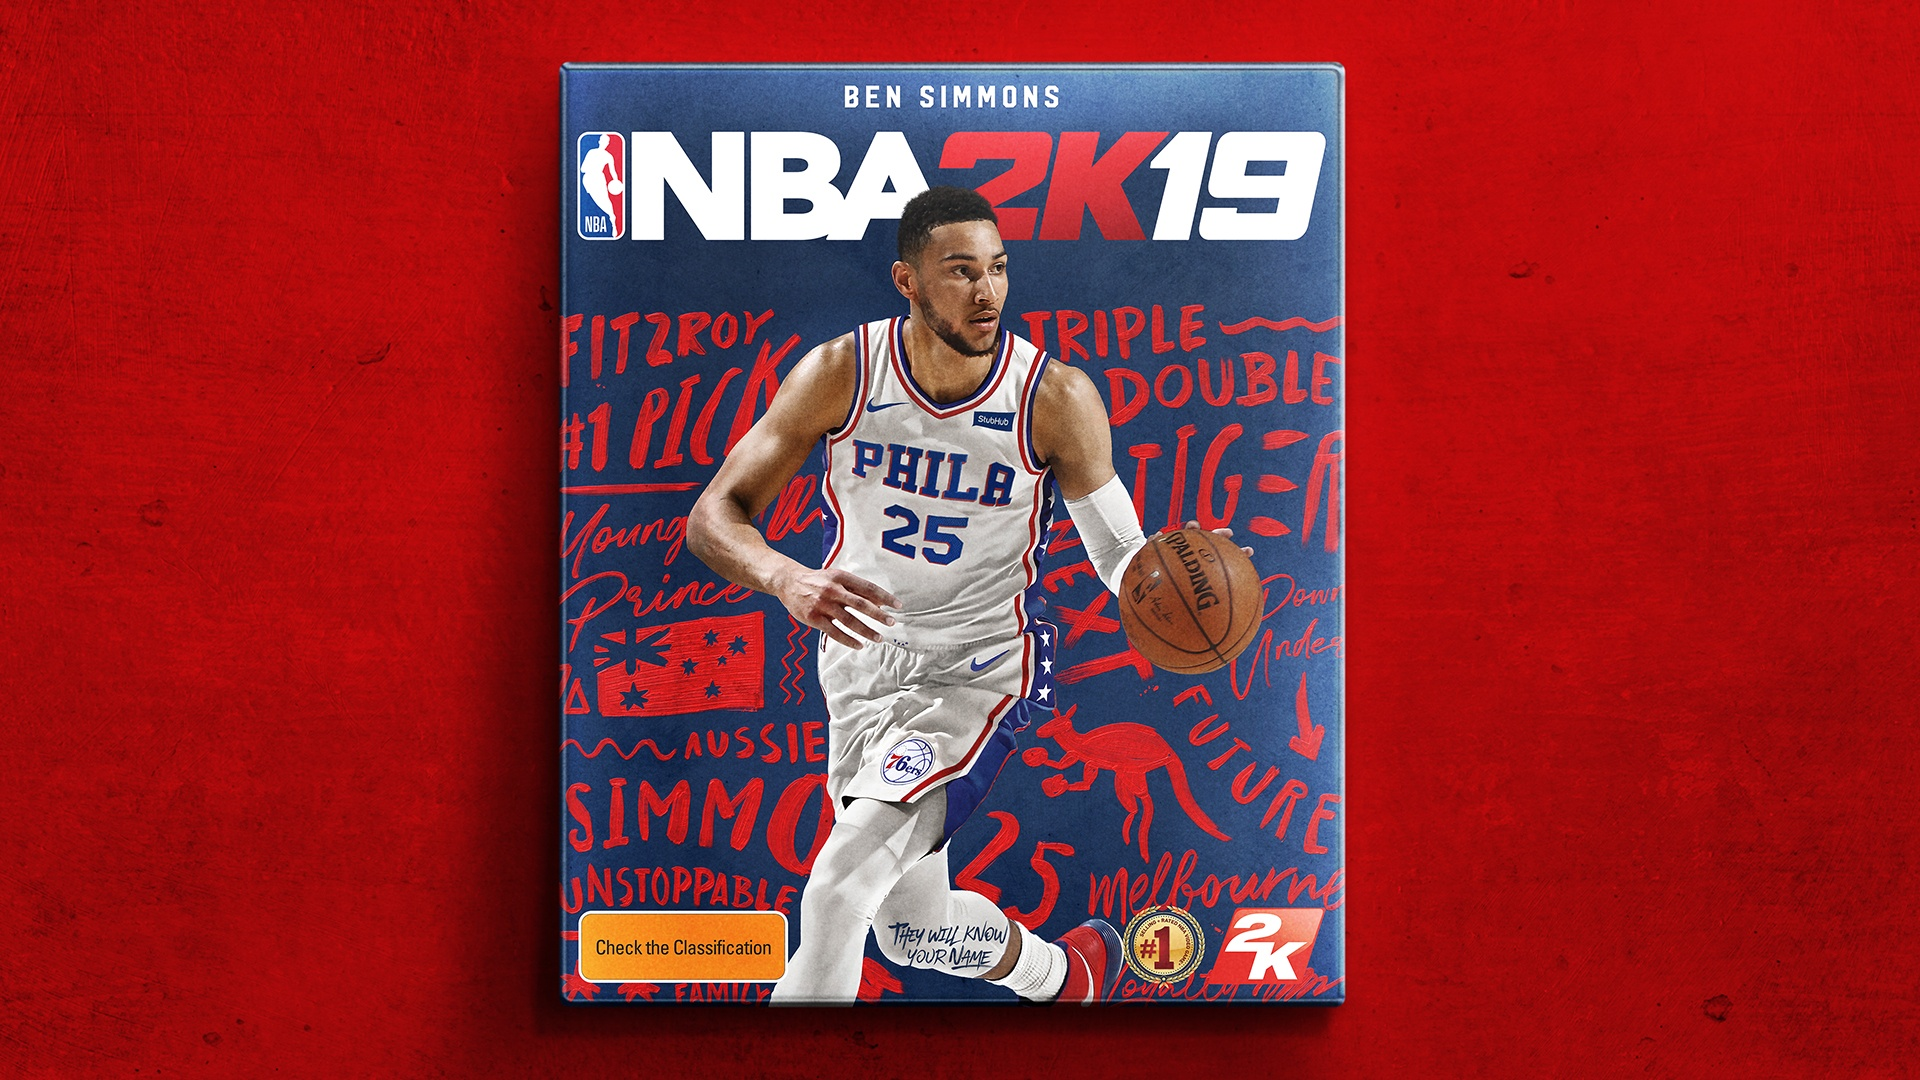 Thumbnail for NBA2K19: They Will Know Your Name